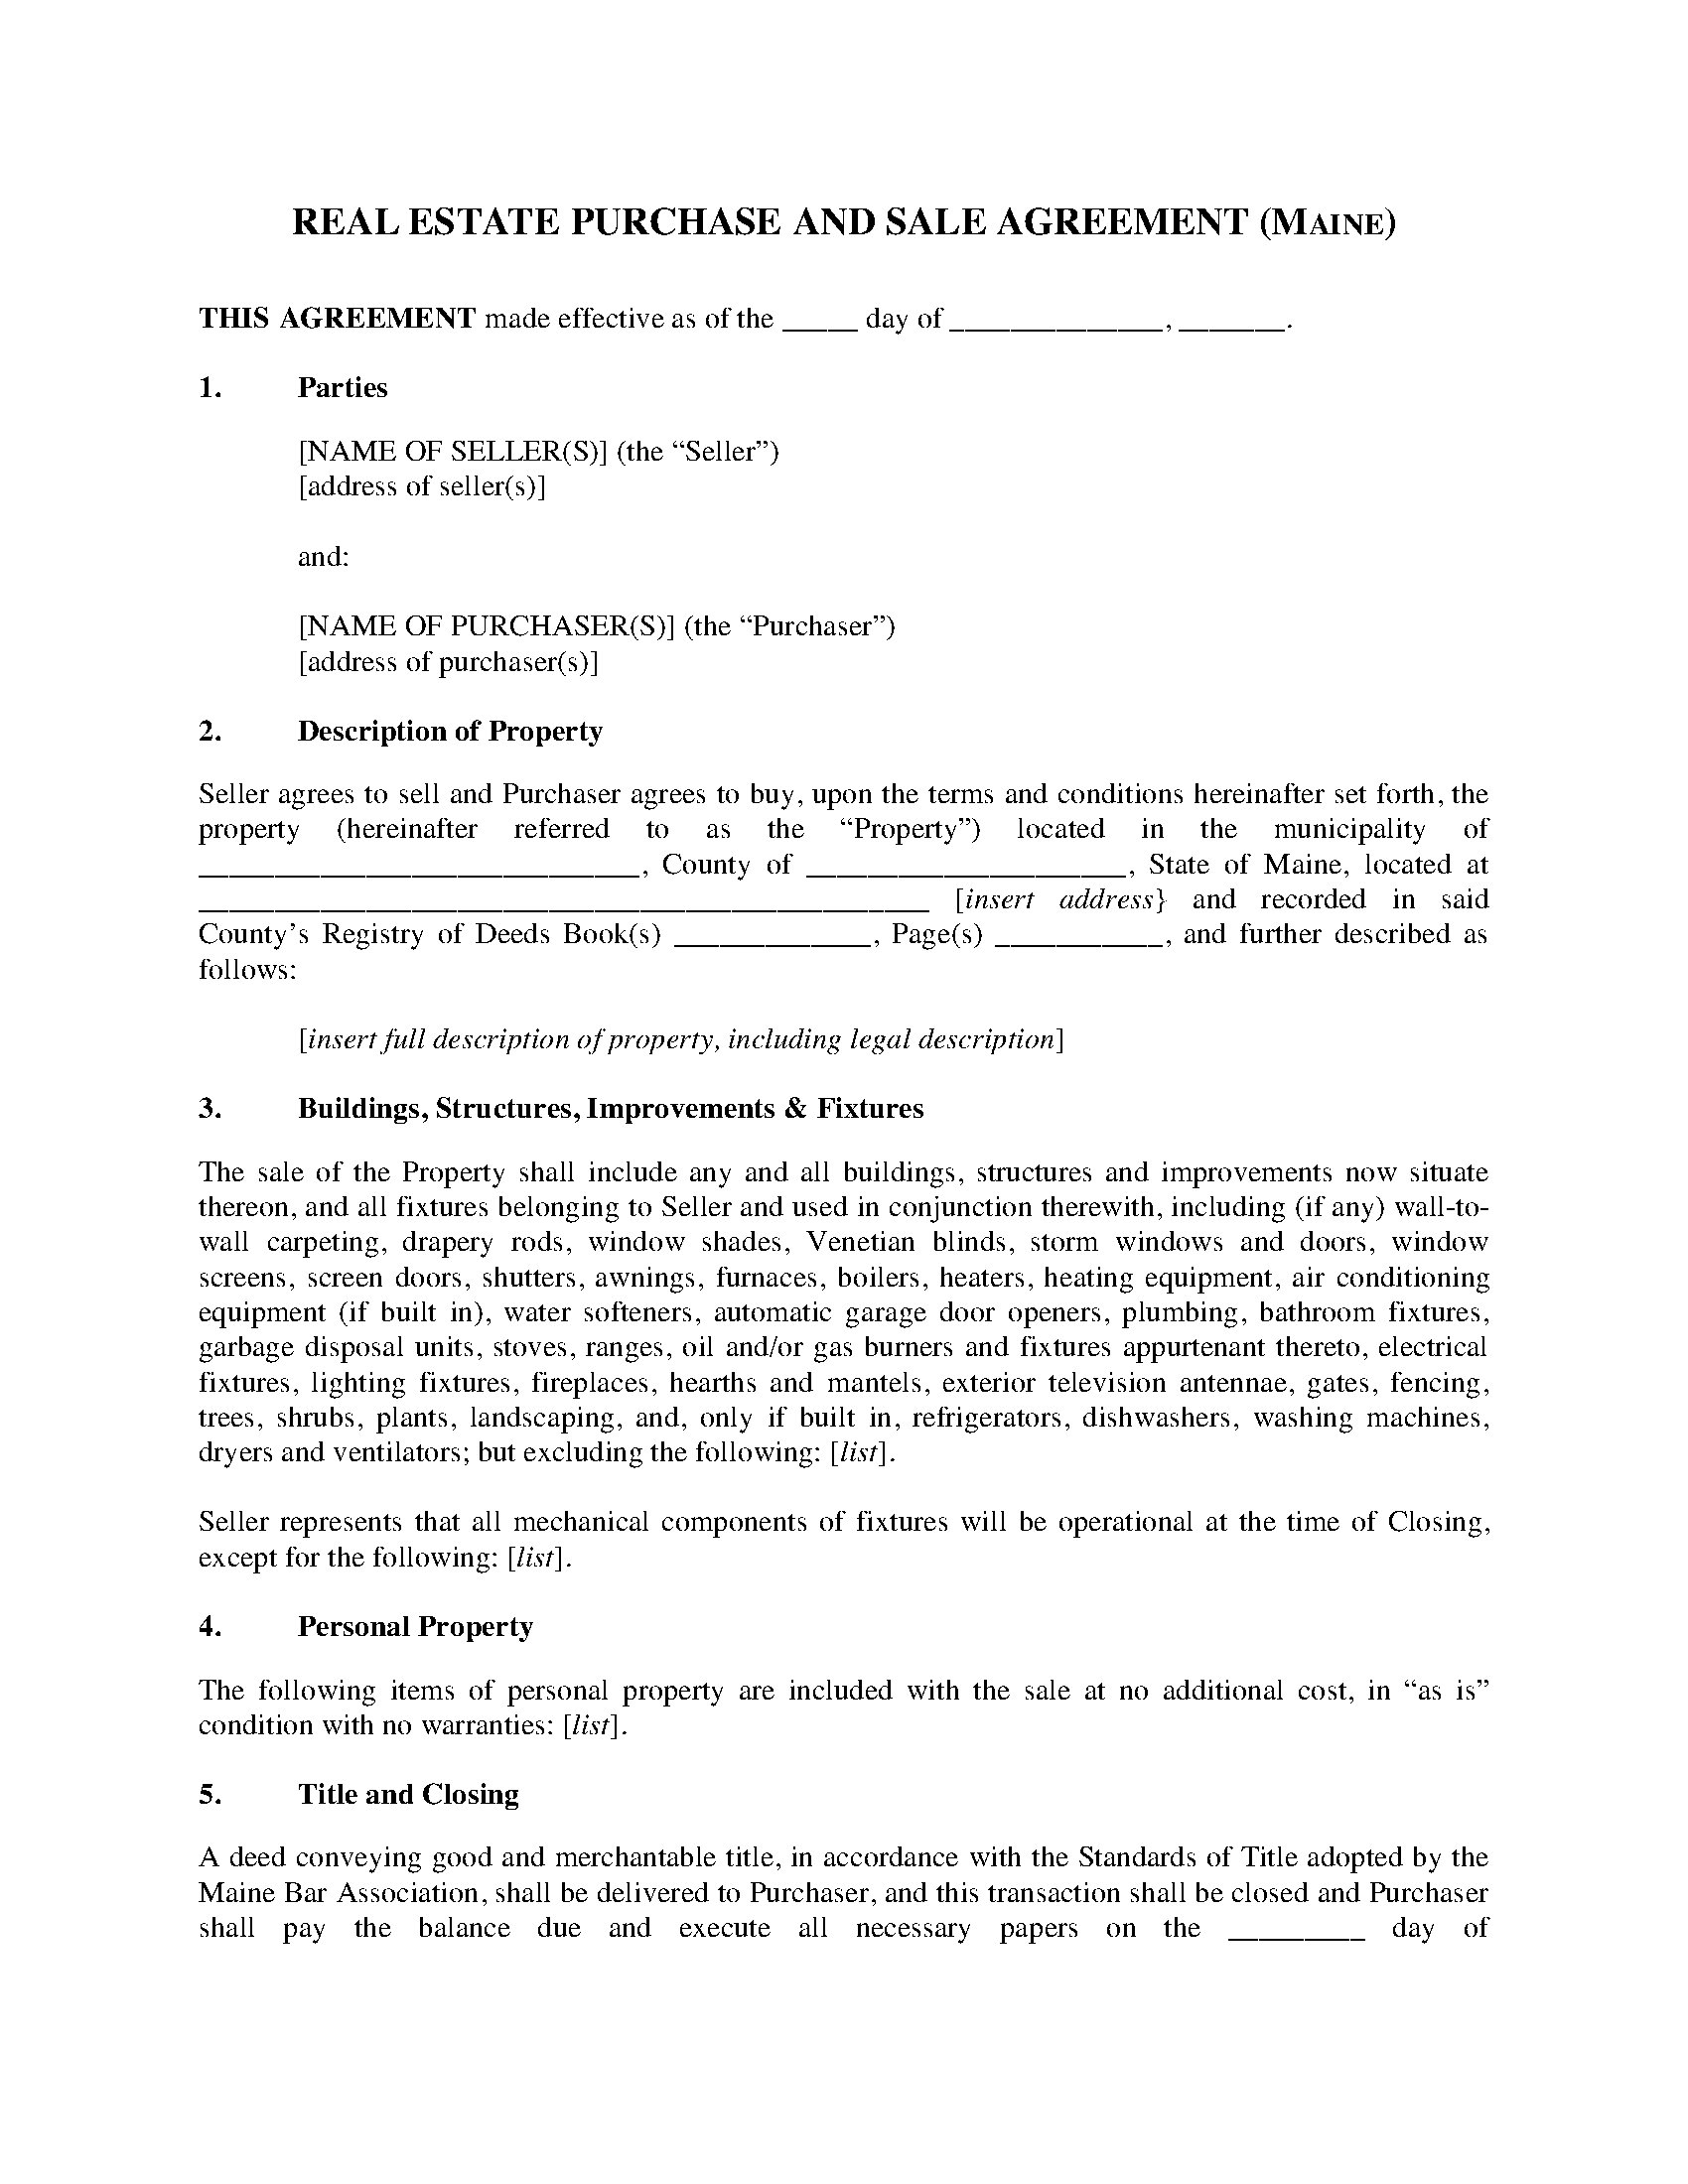 Maine Real Estate Purchase And Sale Agreement